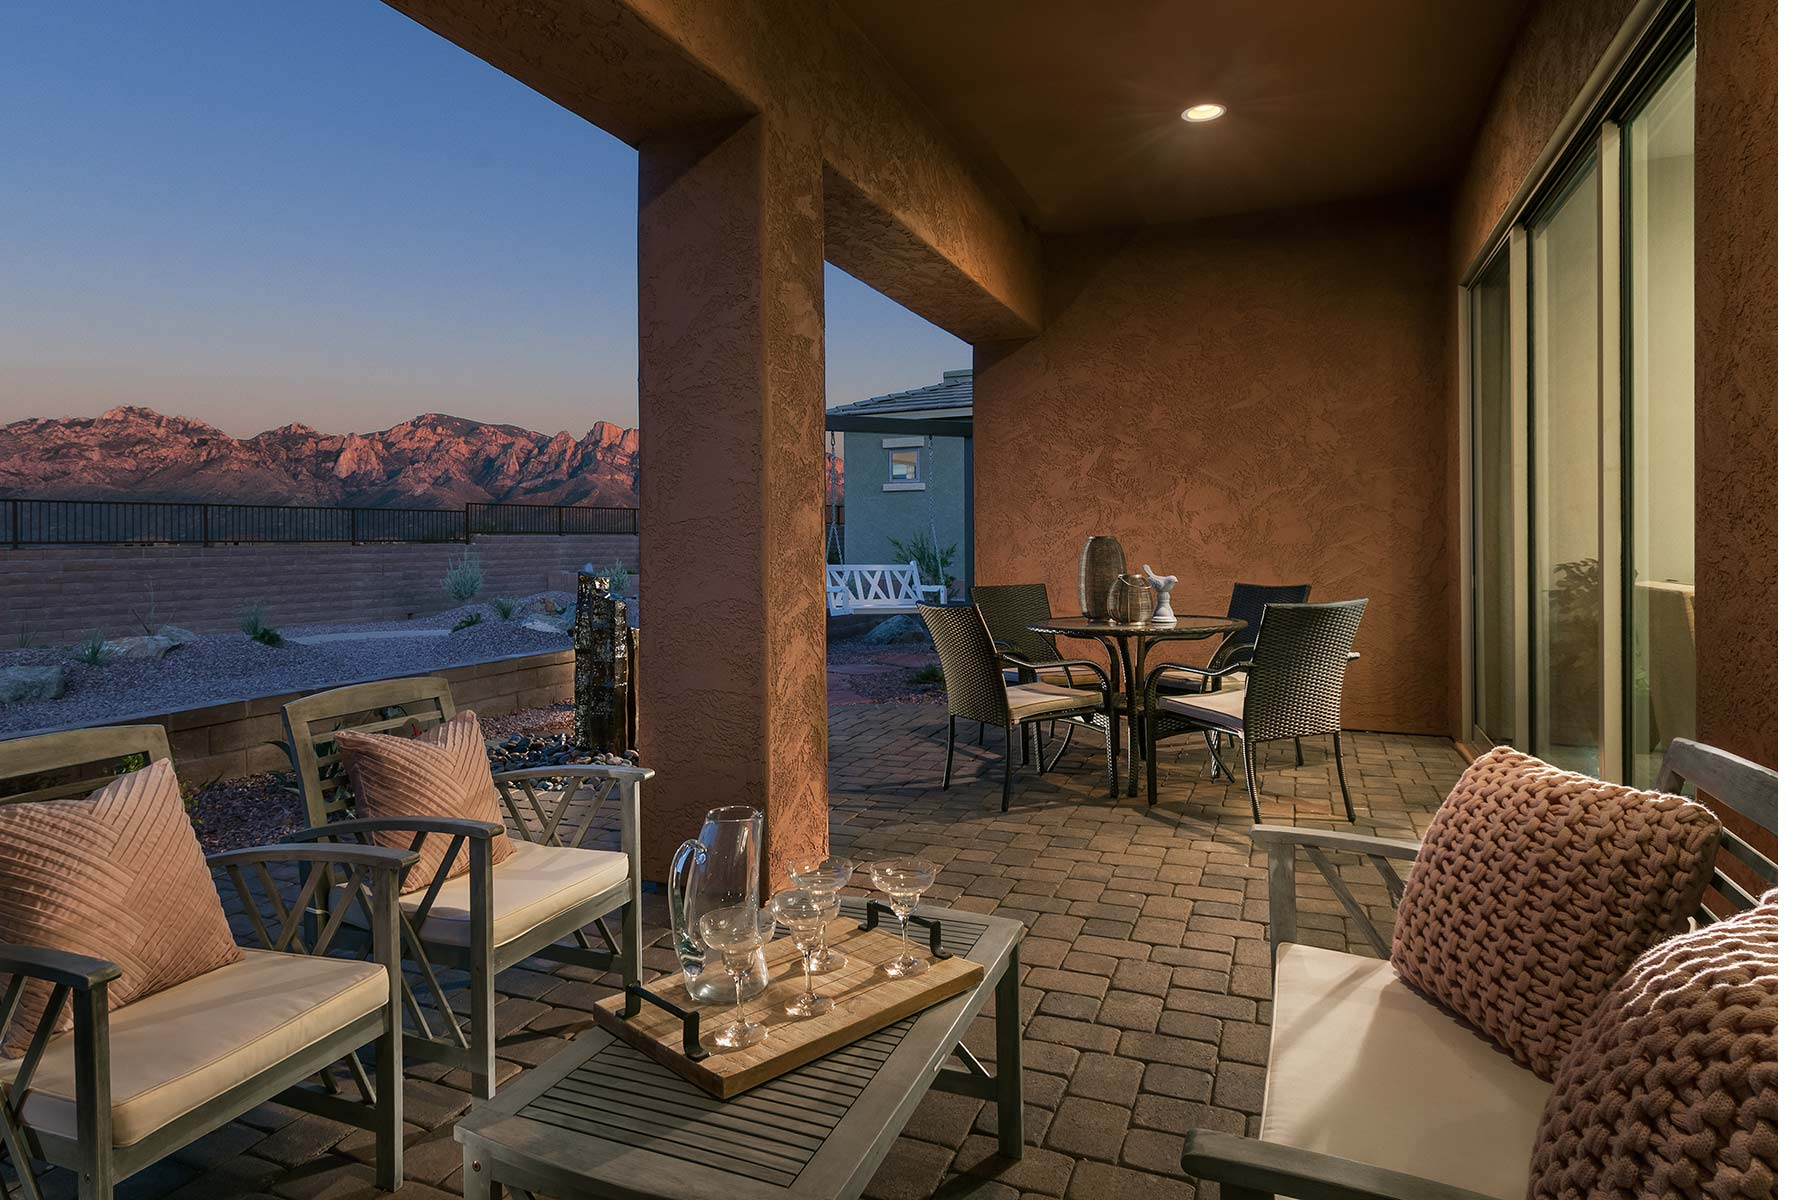 Aspect Plan House Backyard at Viewpointe at Vistoso Trails in Oro Valley Arizona by Mattamy Homes